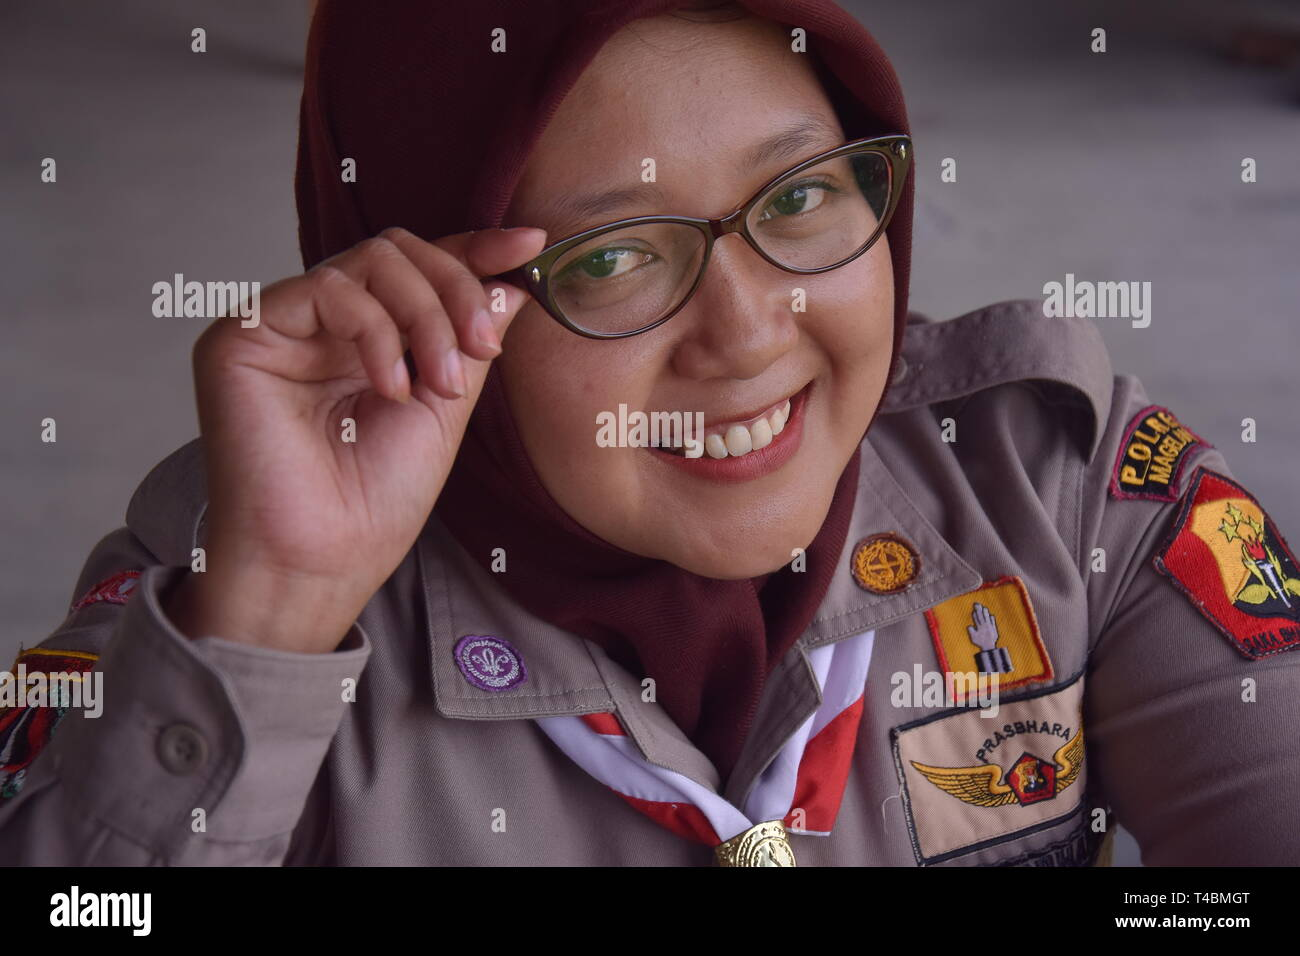 the face of the girl scout from Indonesia - Stock Image